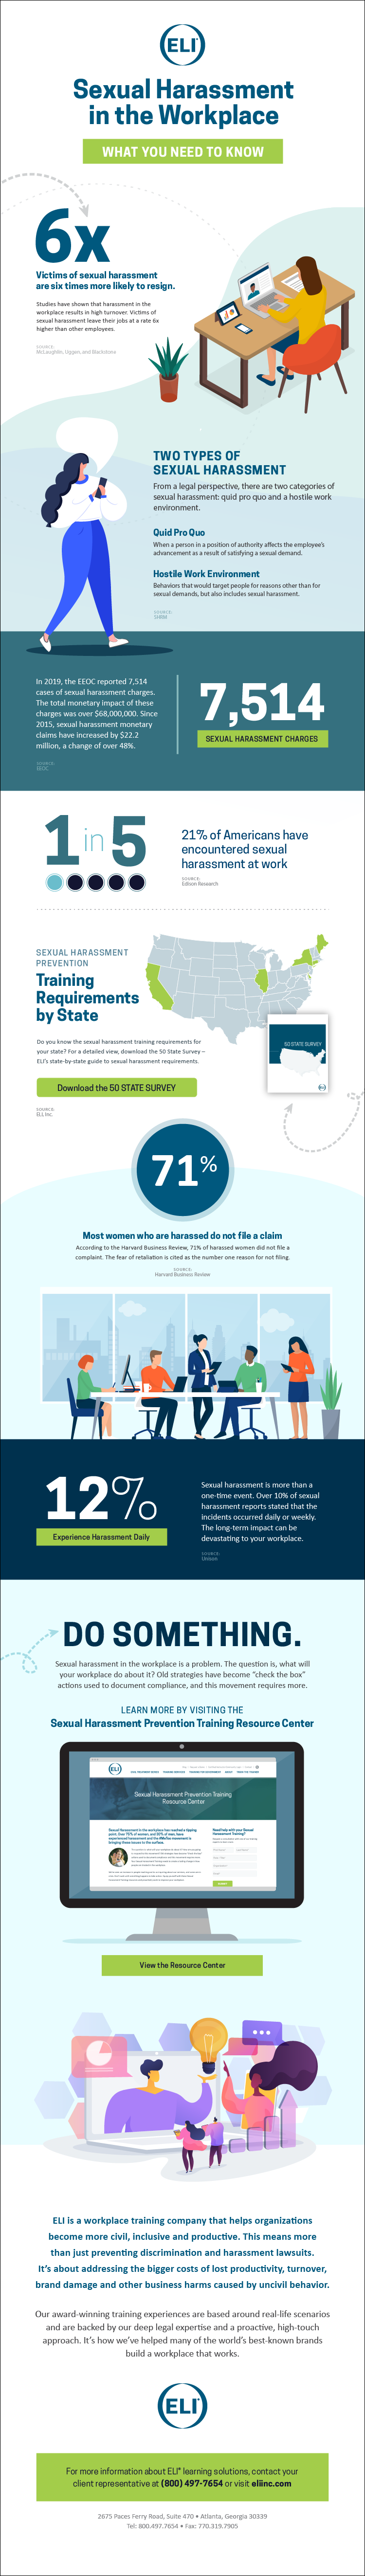 Sexual Harassment in the Workplace: What You Need to Know Infographic